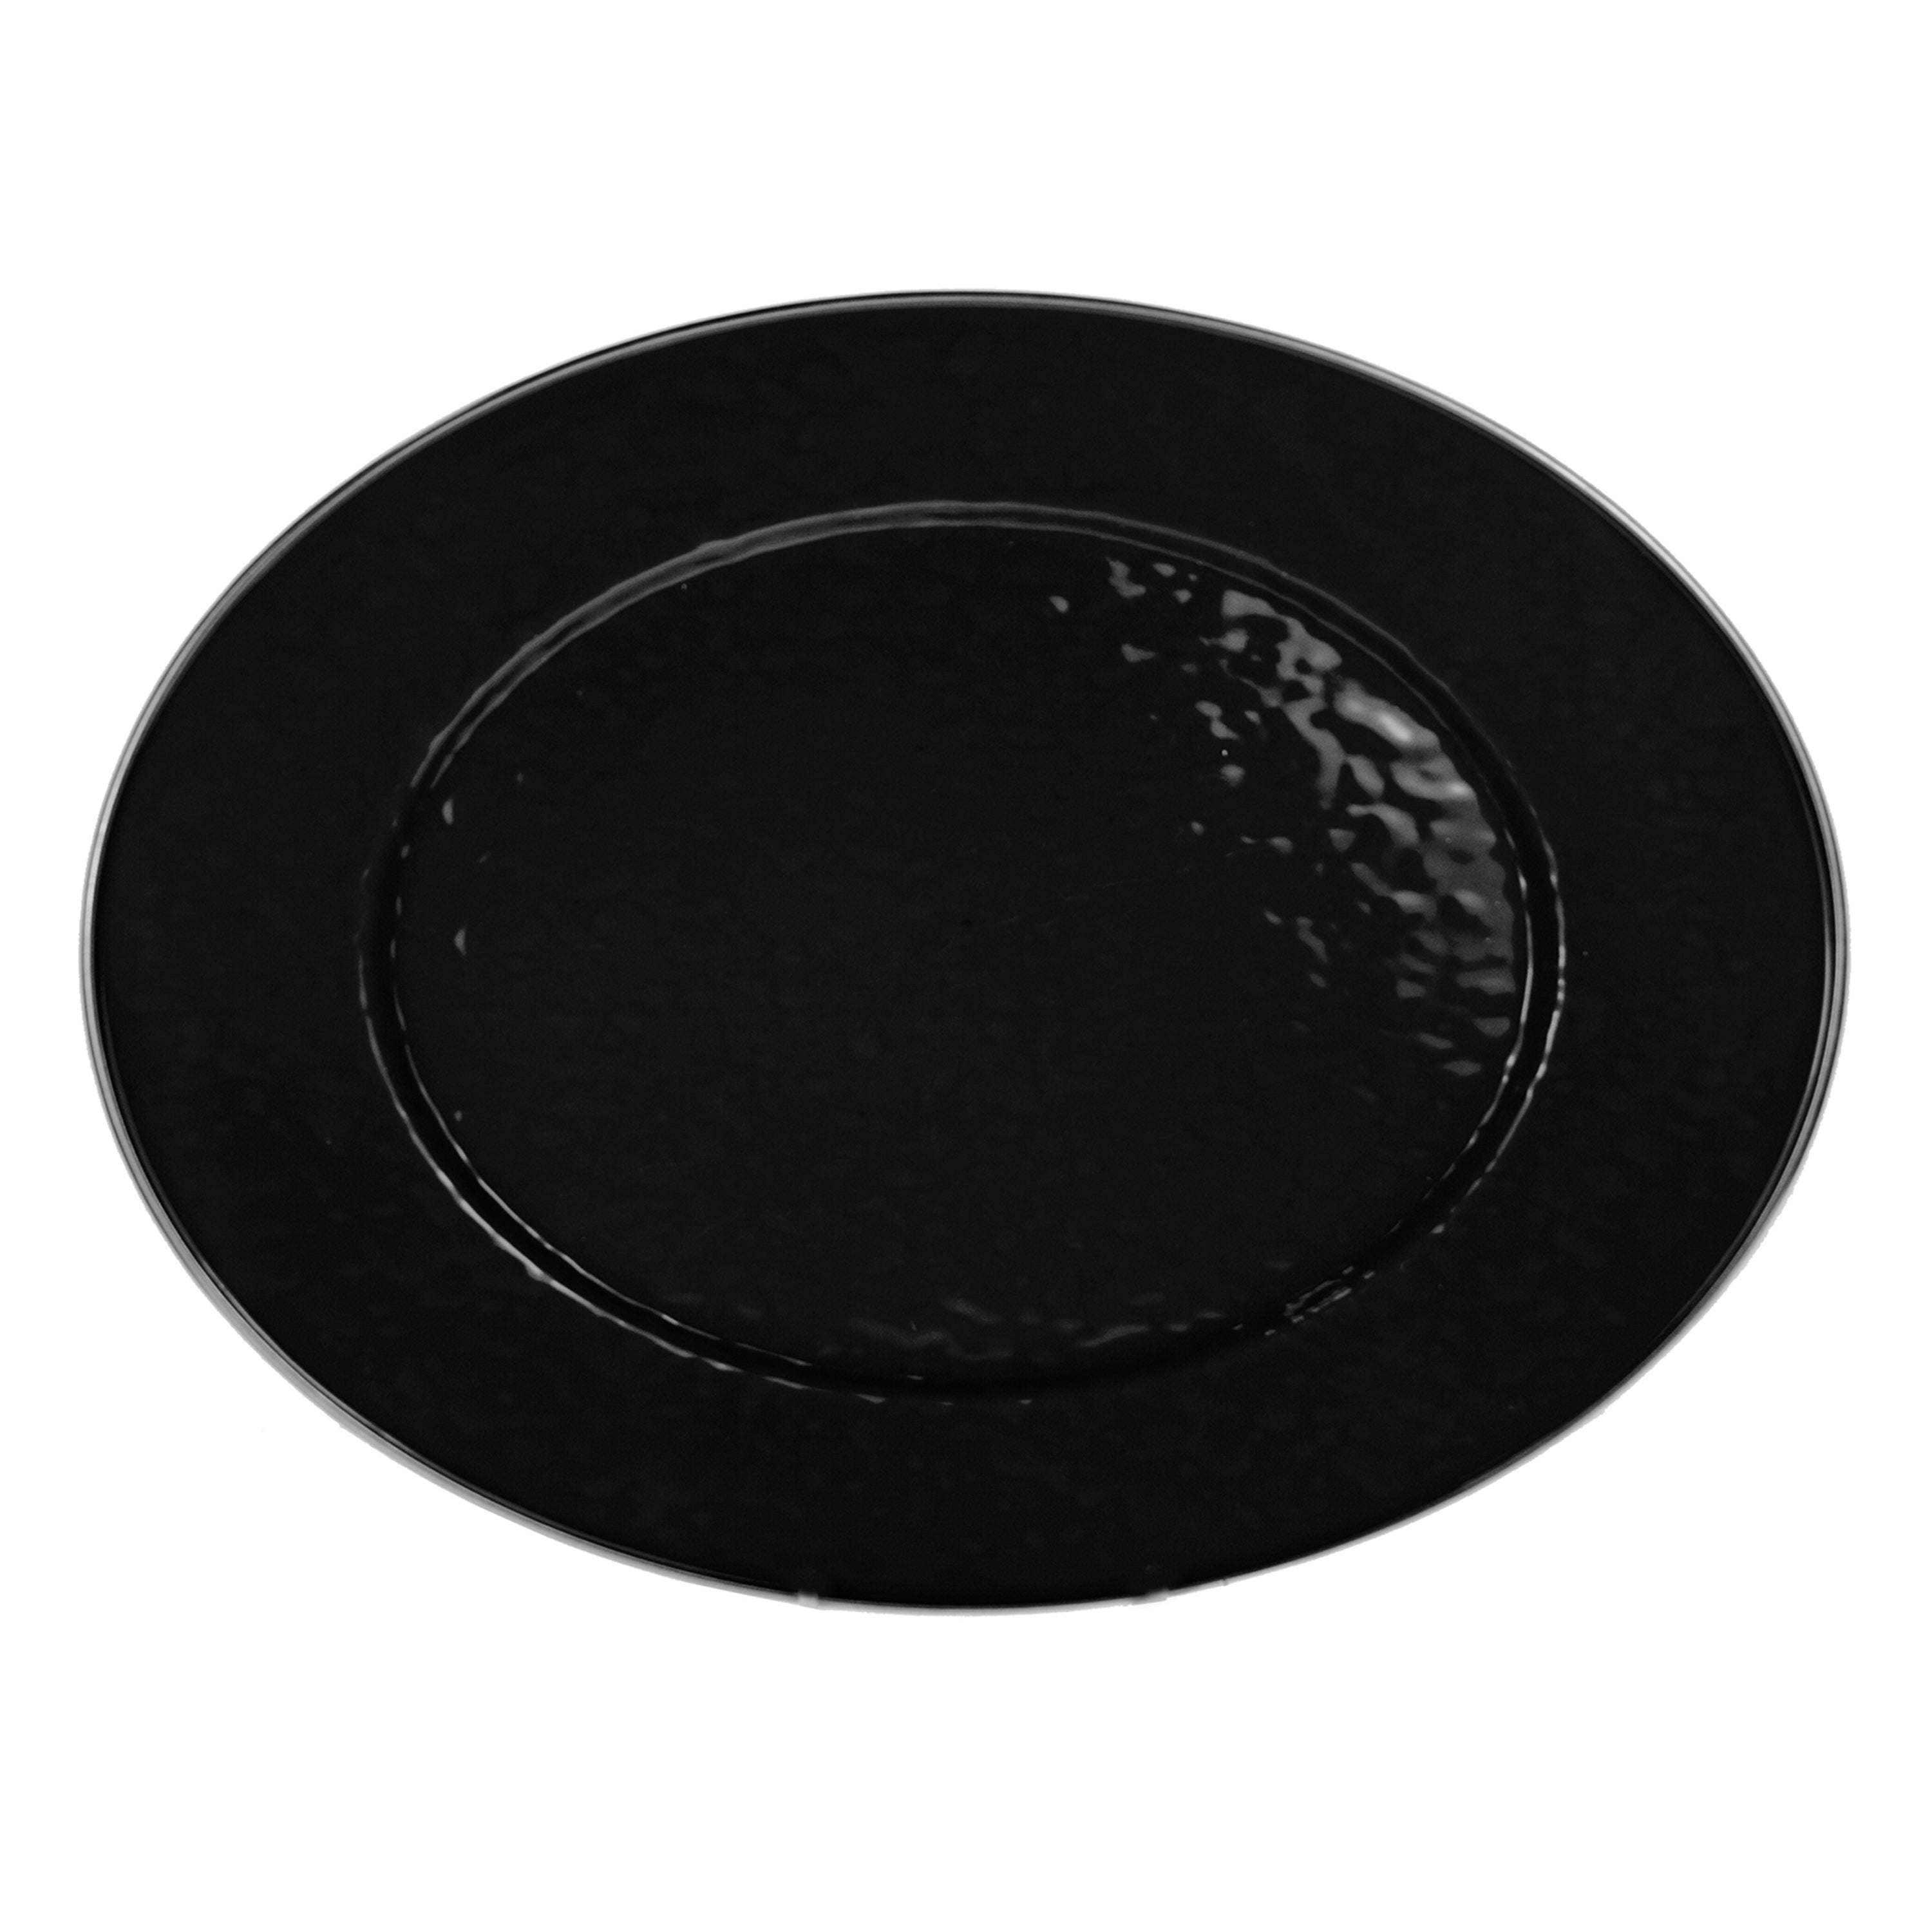 BK06 - Solid Black Oval Platter Product 1